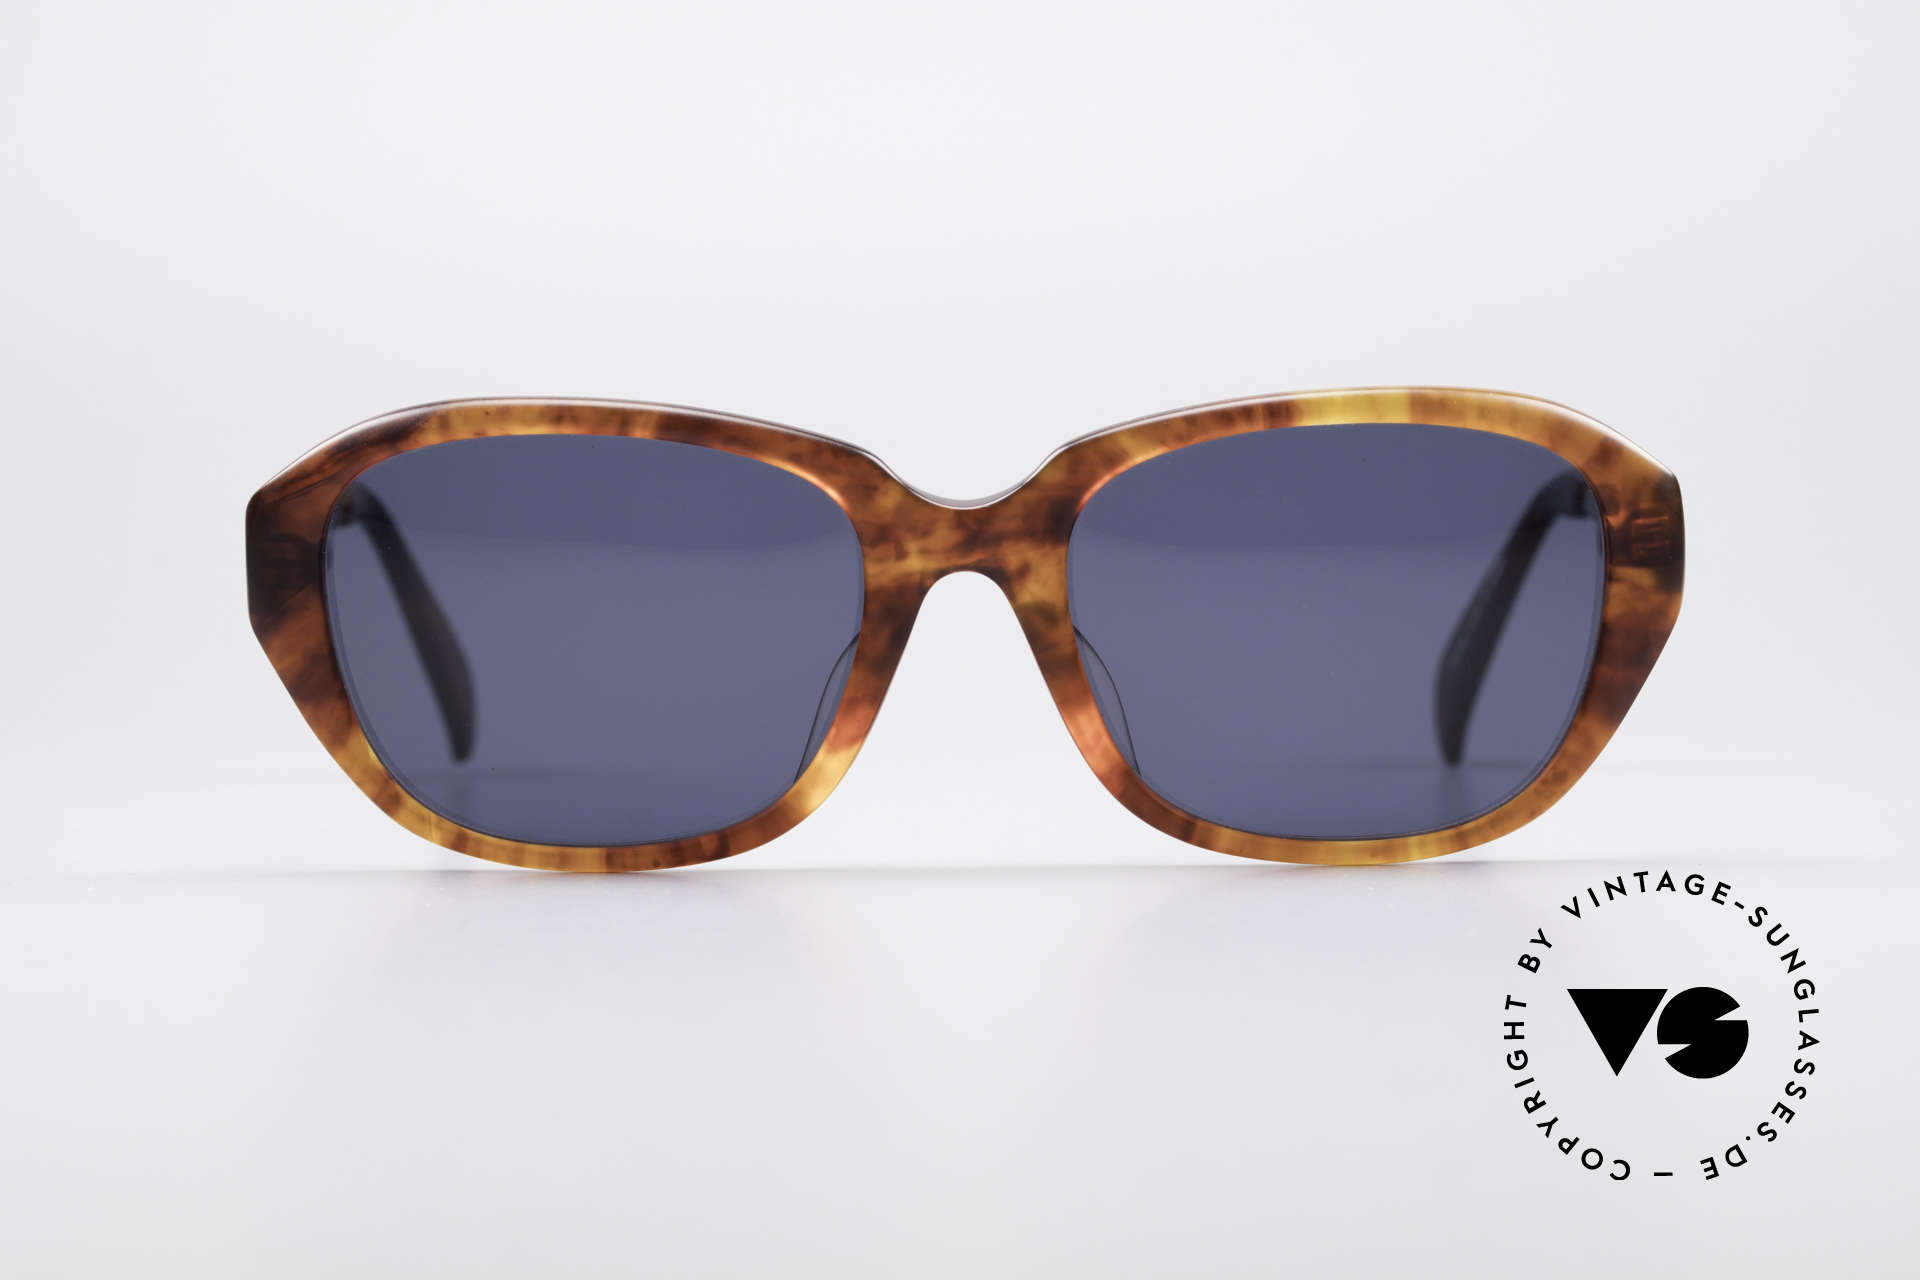 Jean Paul Gaultier 56-1072 JPG Designer Sunglasses, great combination of materials & colors; eye-catcher!, Made for Men and Women